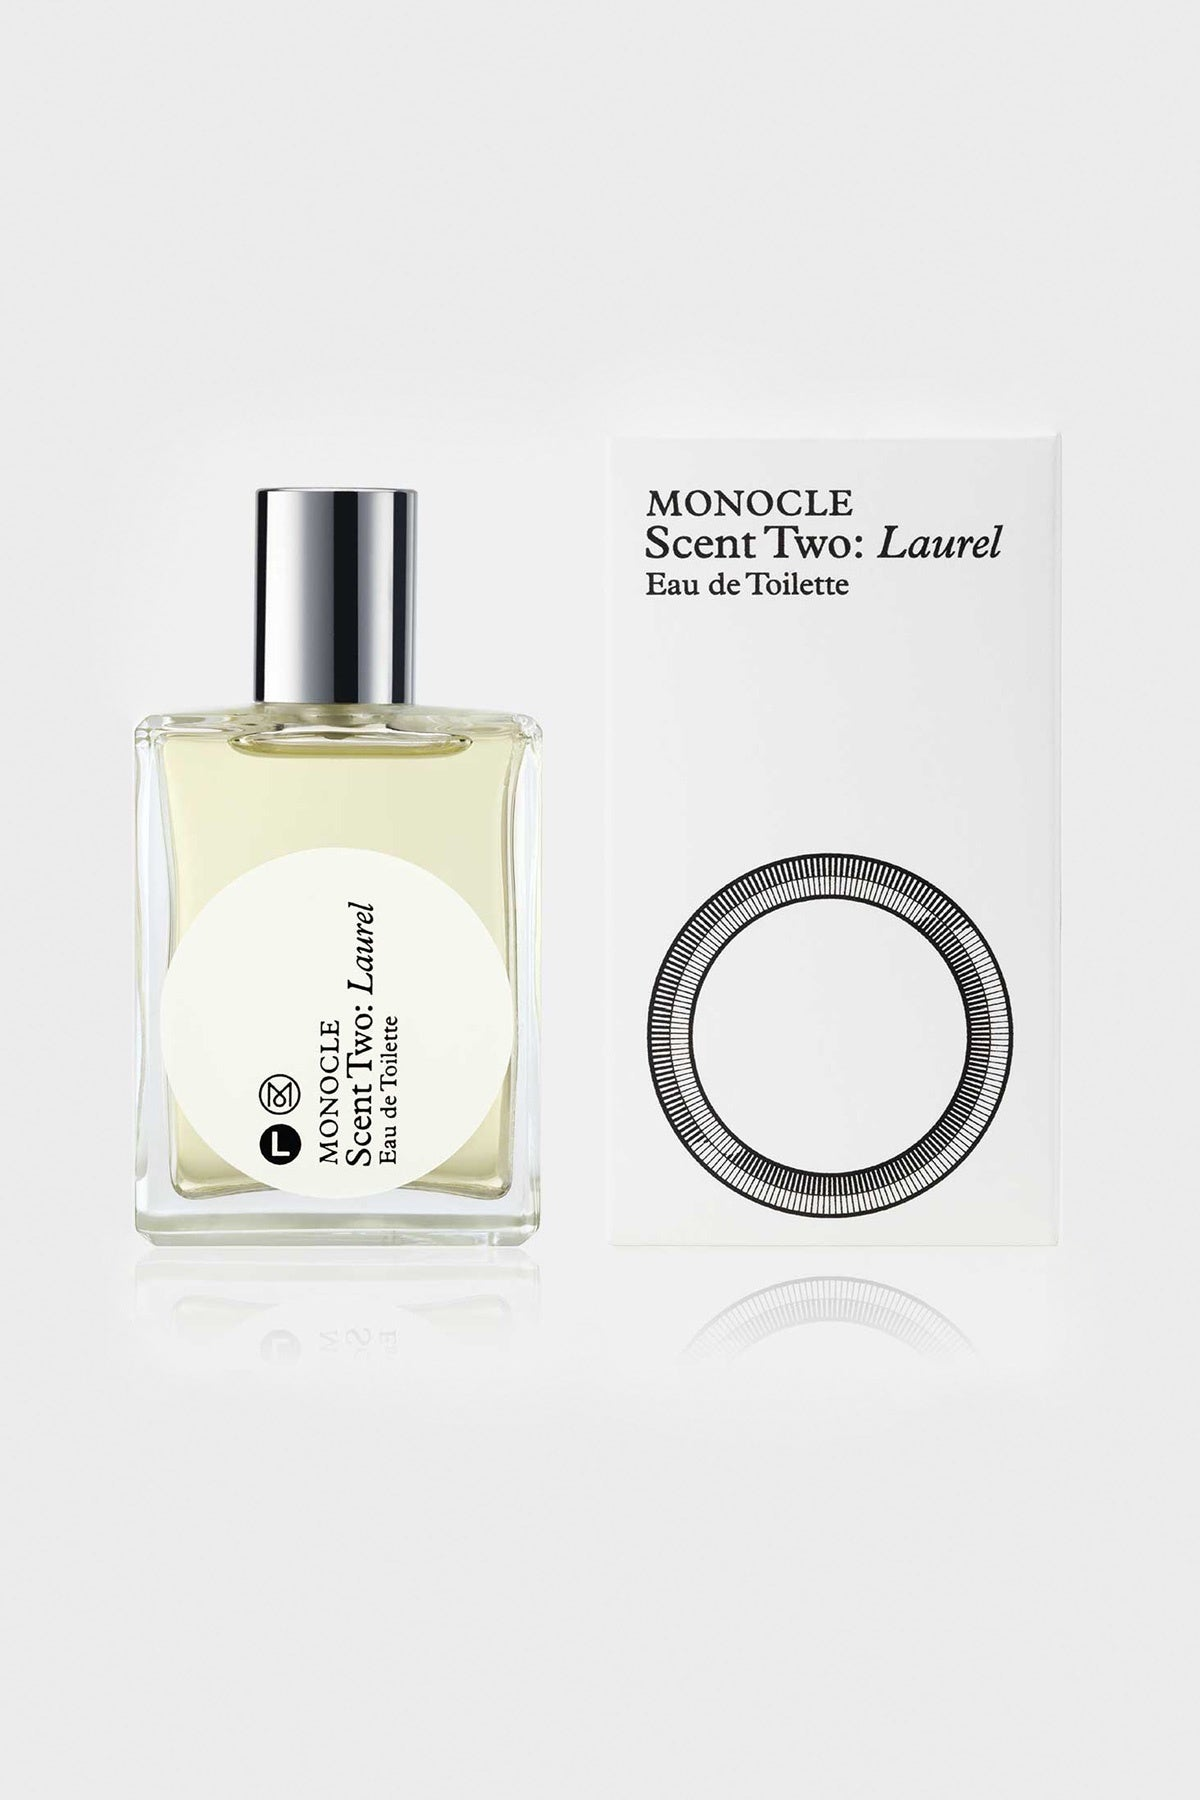 Comme des Garçons PARFUMS - Monocle Scent Two Laurel Eau de Toilette - 50ml Natural Spray - Canoe Club